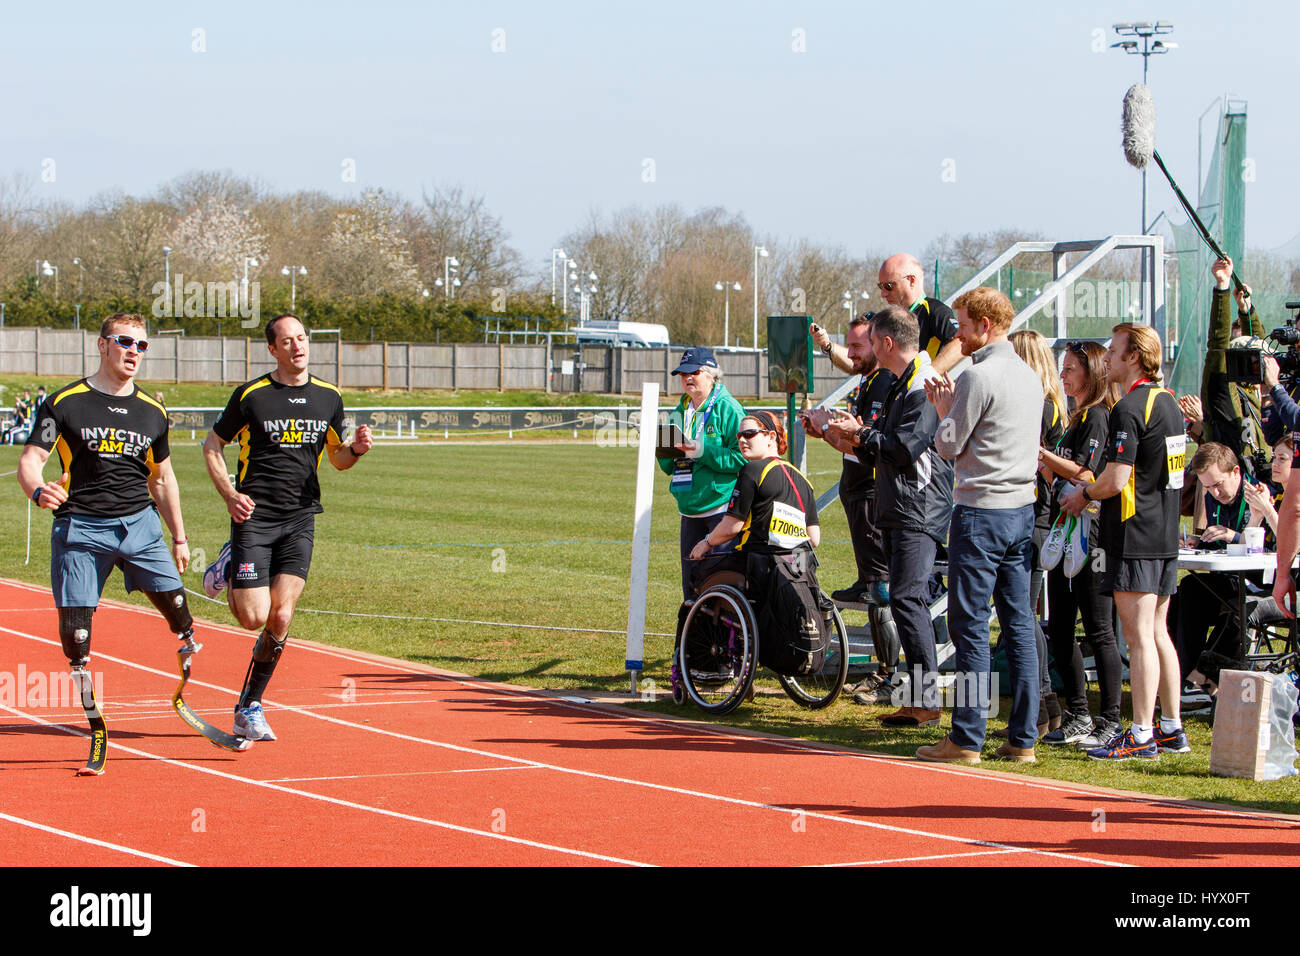 Bath, UK, 7th April, 2017. Prince Harry is pictured at the University of Bath Sports Training Village watching Athlete's - Stock Image